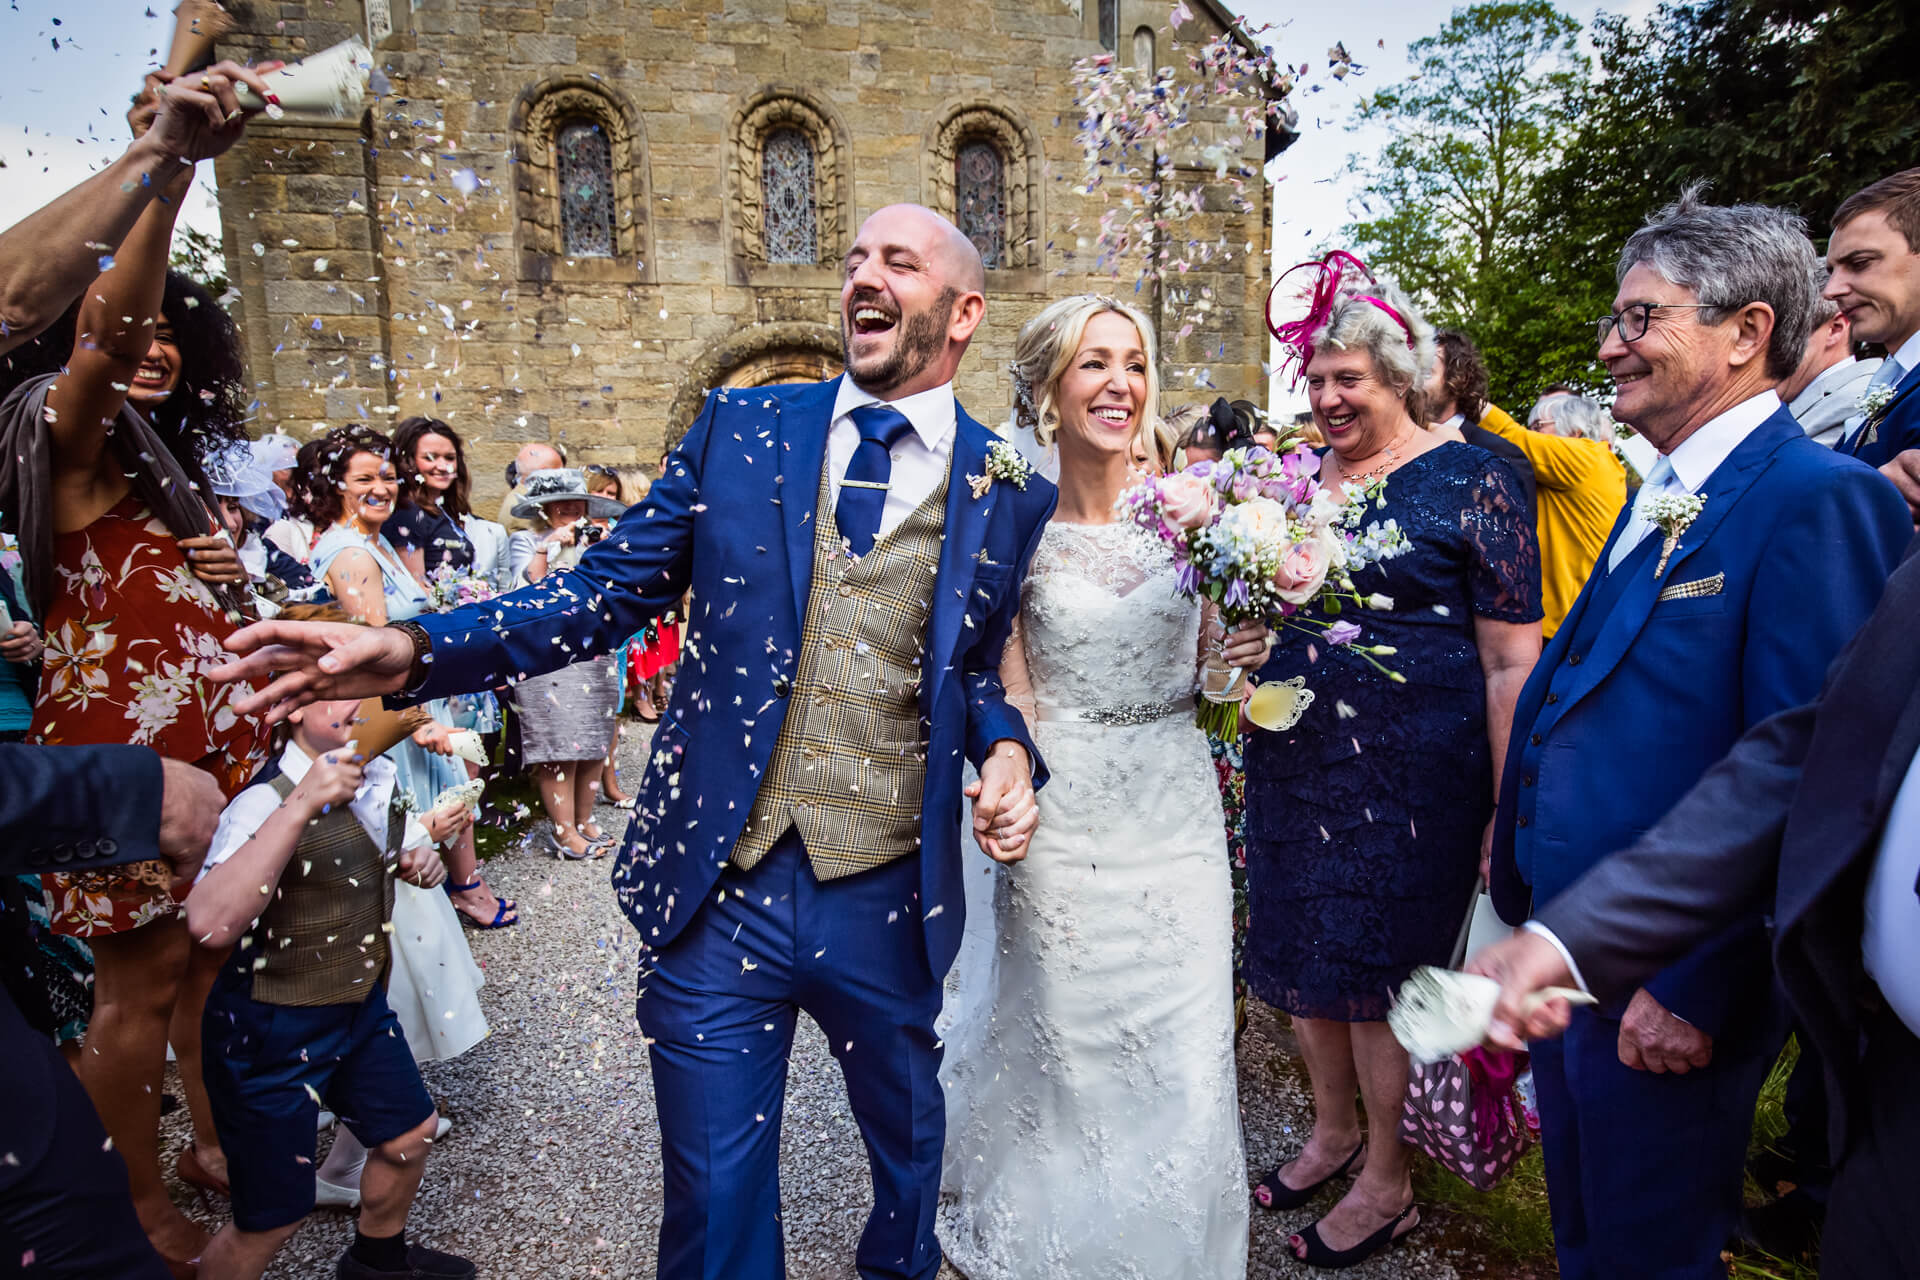 Yorkshire wedding photographer - Couple walking through a confetti shower